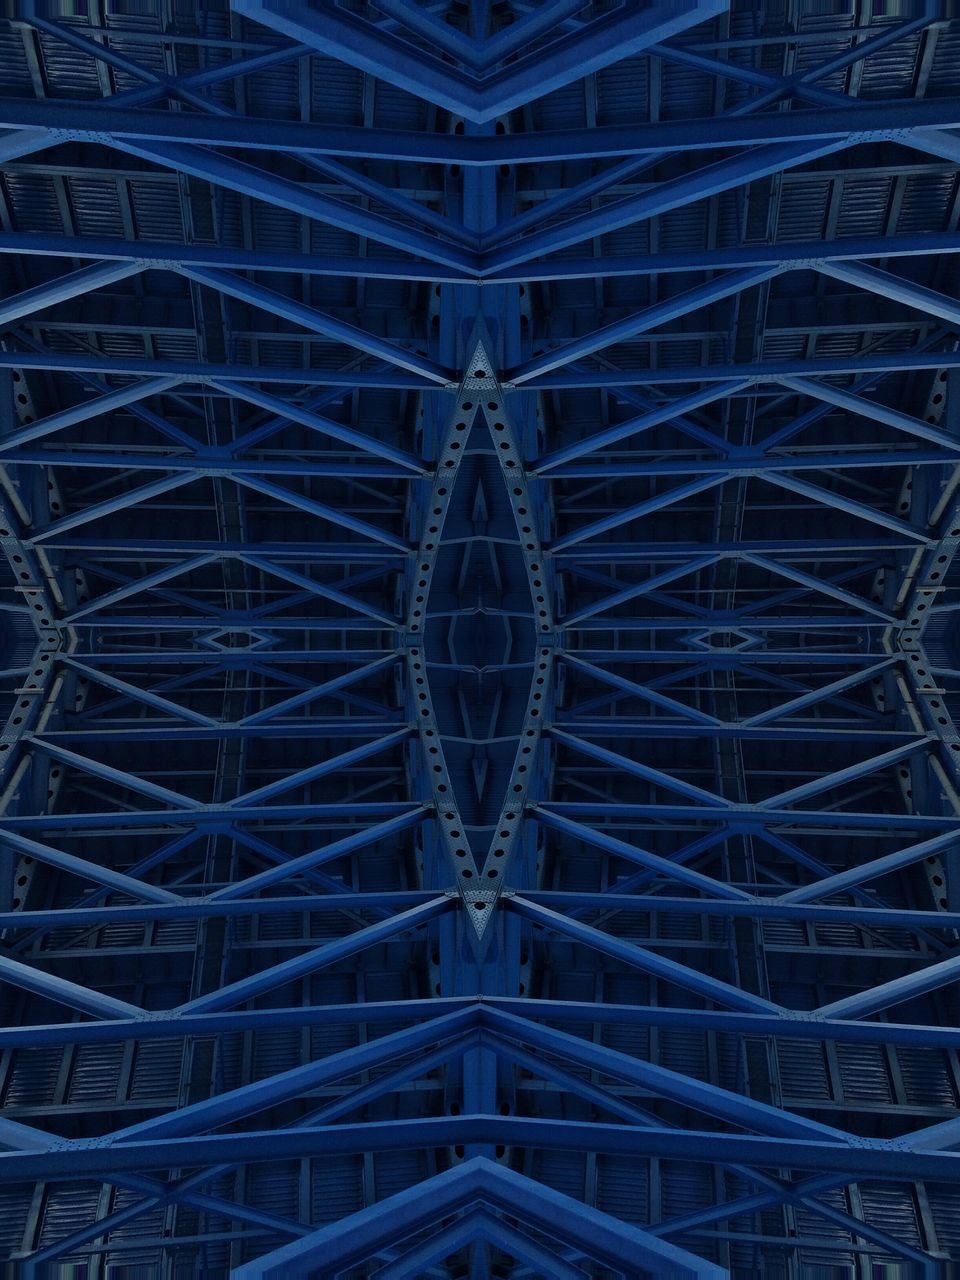 blue, full frame, backgrounds, no people, architecture, built structure, day, outdoors, complexity, illuminated, close-up